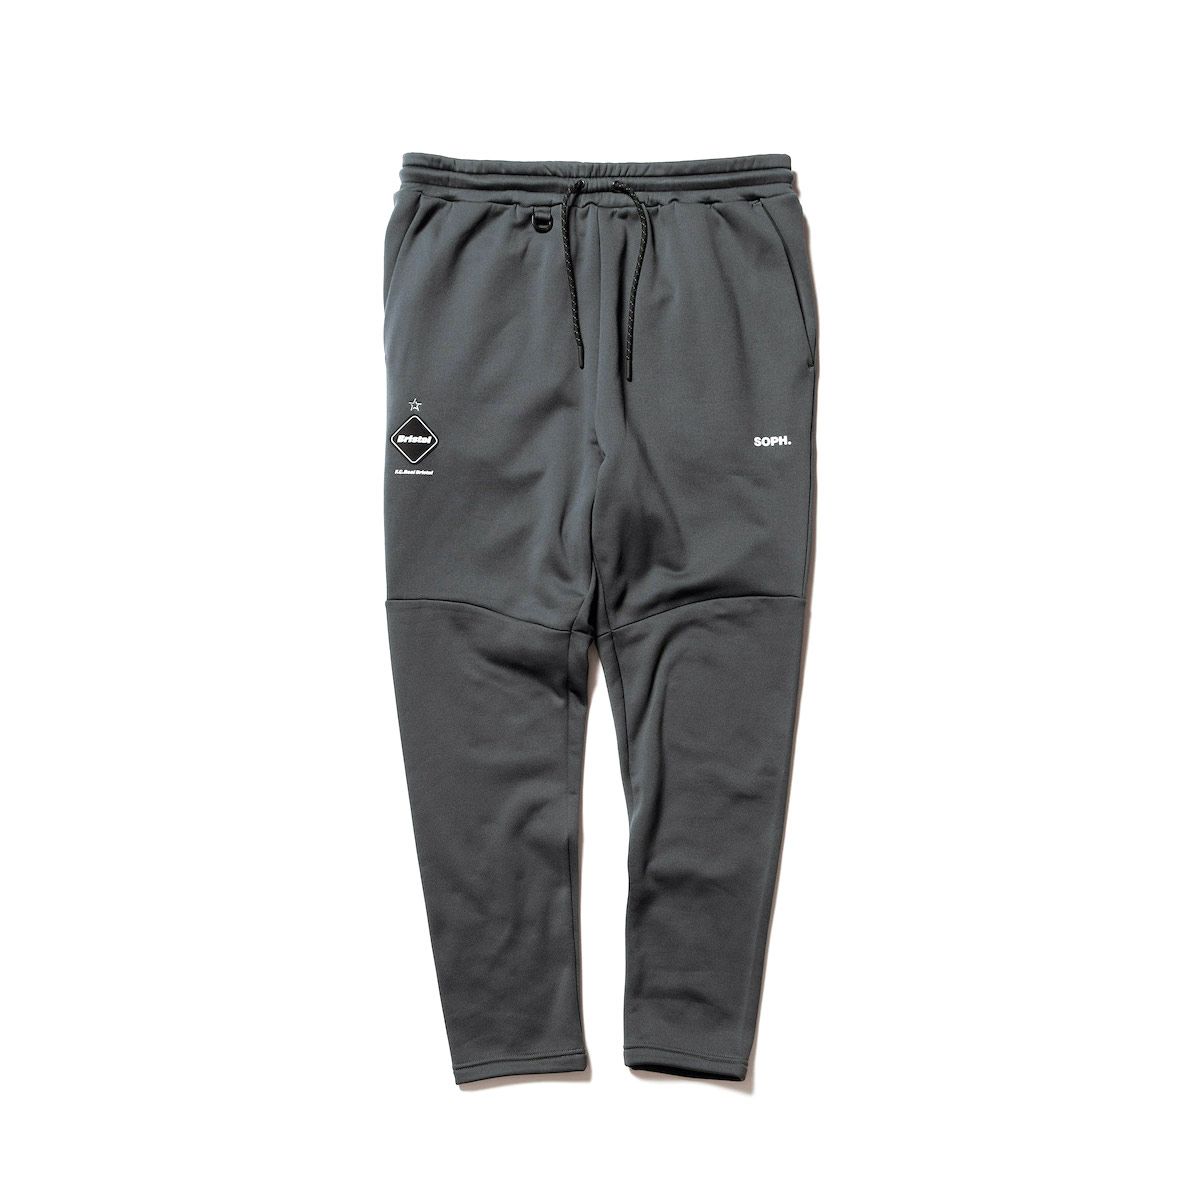 F.C.Real Bristol / POLARTEC POWER STRETCH TRAINING PANTS (Gray)